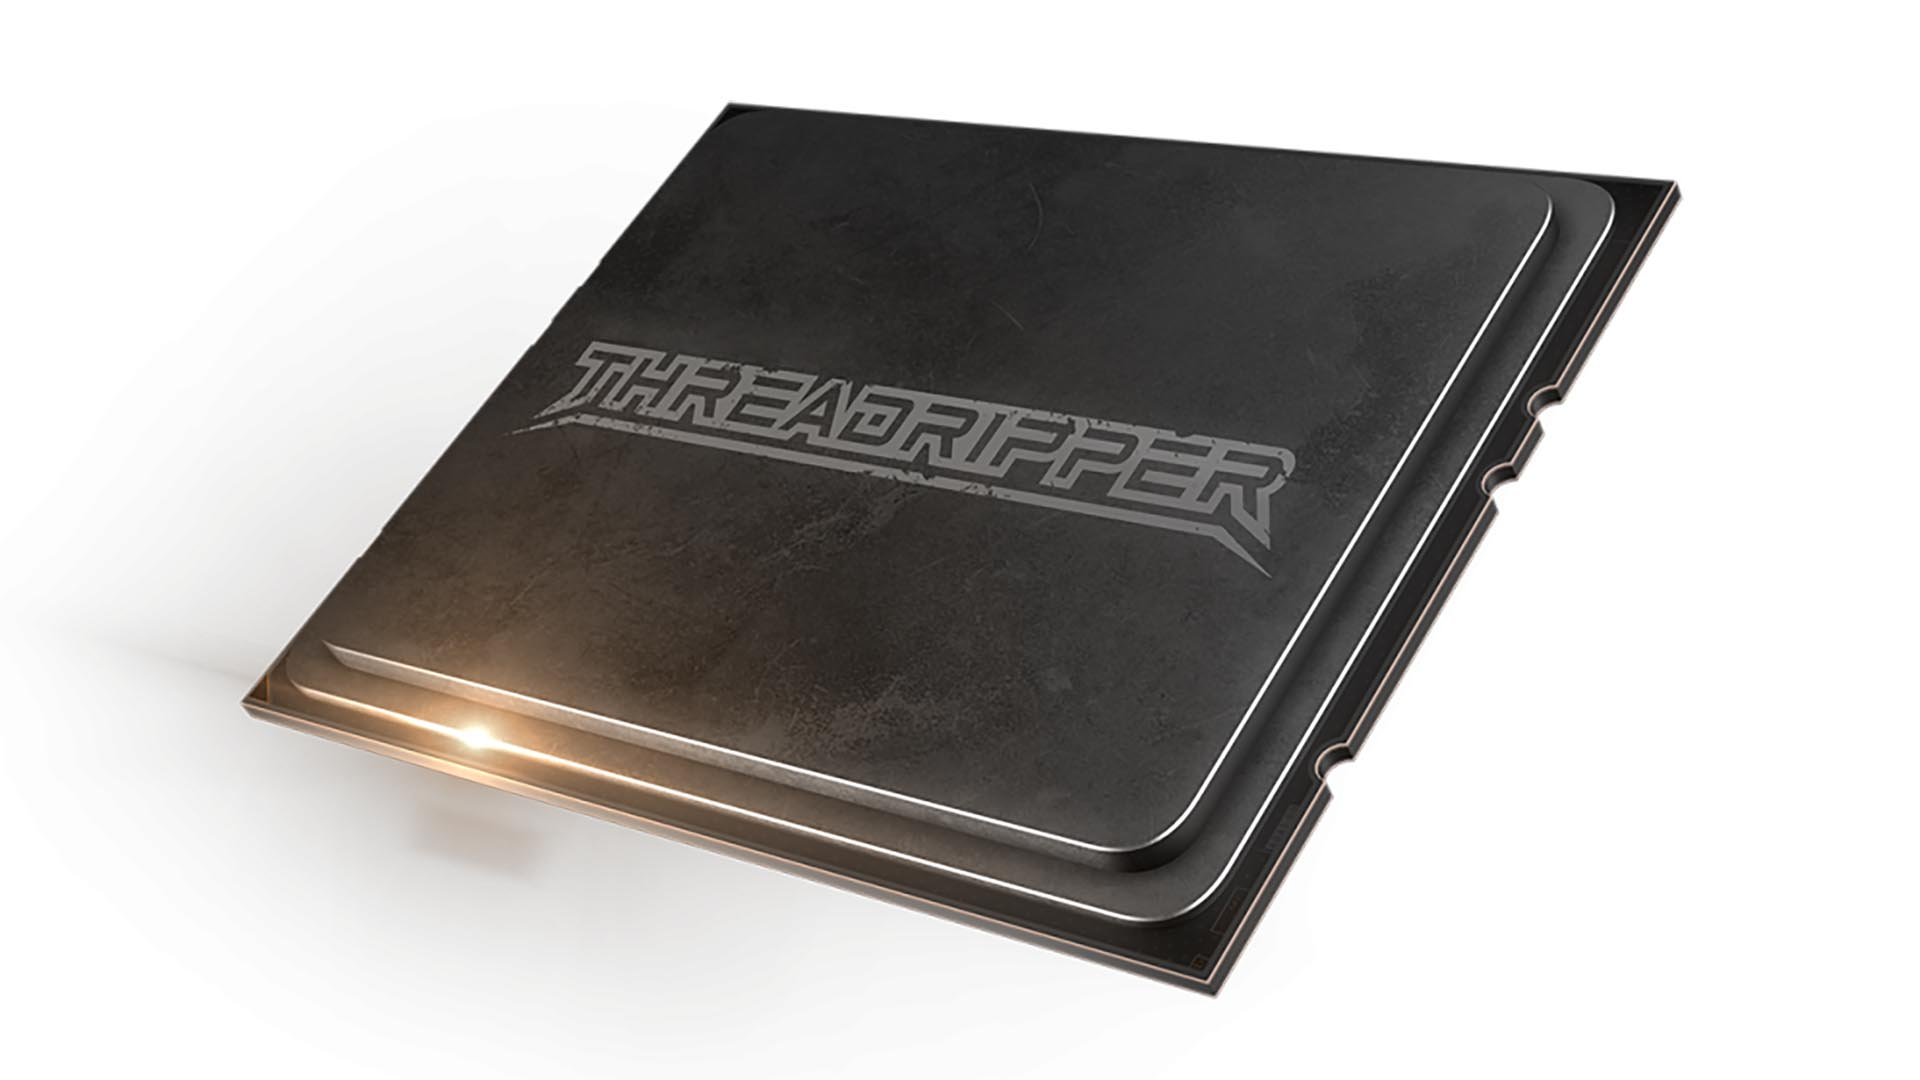 AMD's 7nm manufacturing crunch could explain Threadripper's